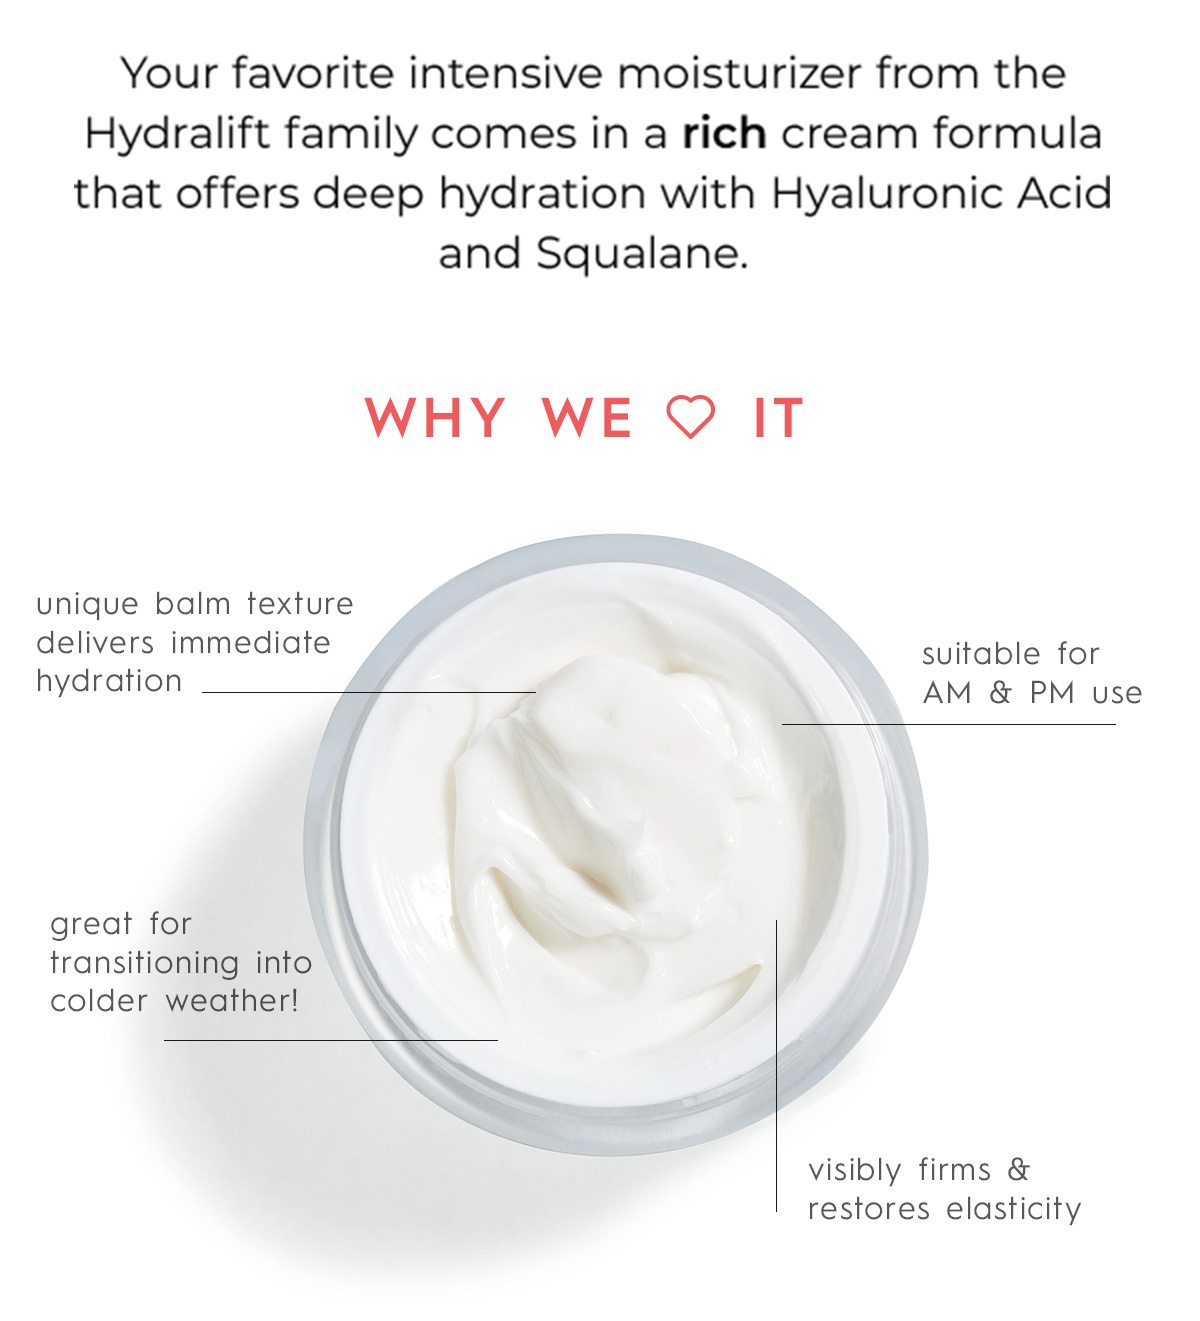 Your favorite intensive moisturizer from the Hydralift family comes in a rich cream formula that offers deep hydration with Hyaluronic Acid and Squalane.